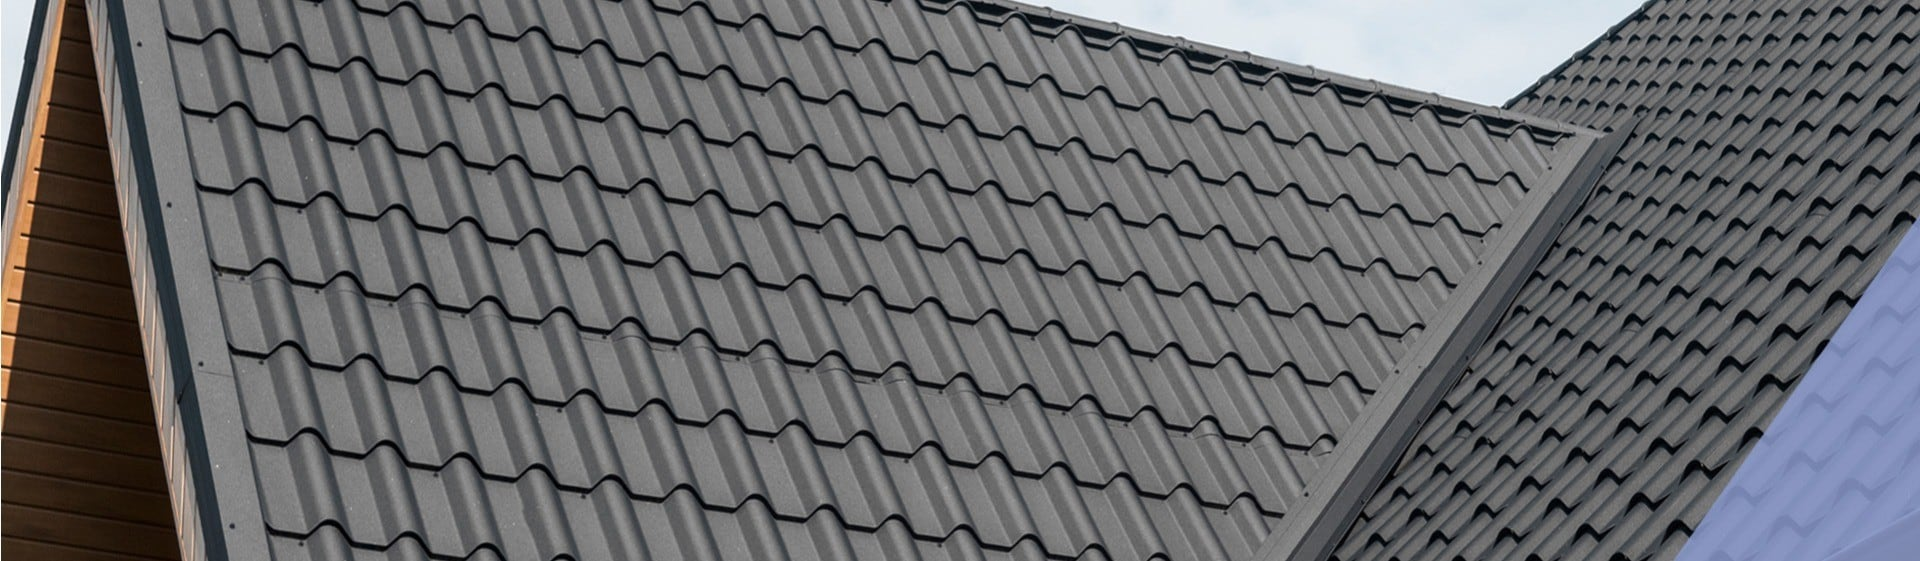 Roof with klober Dry Verge and Valley products